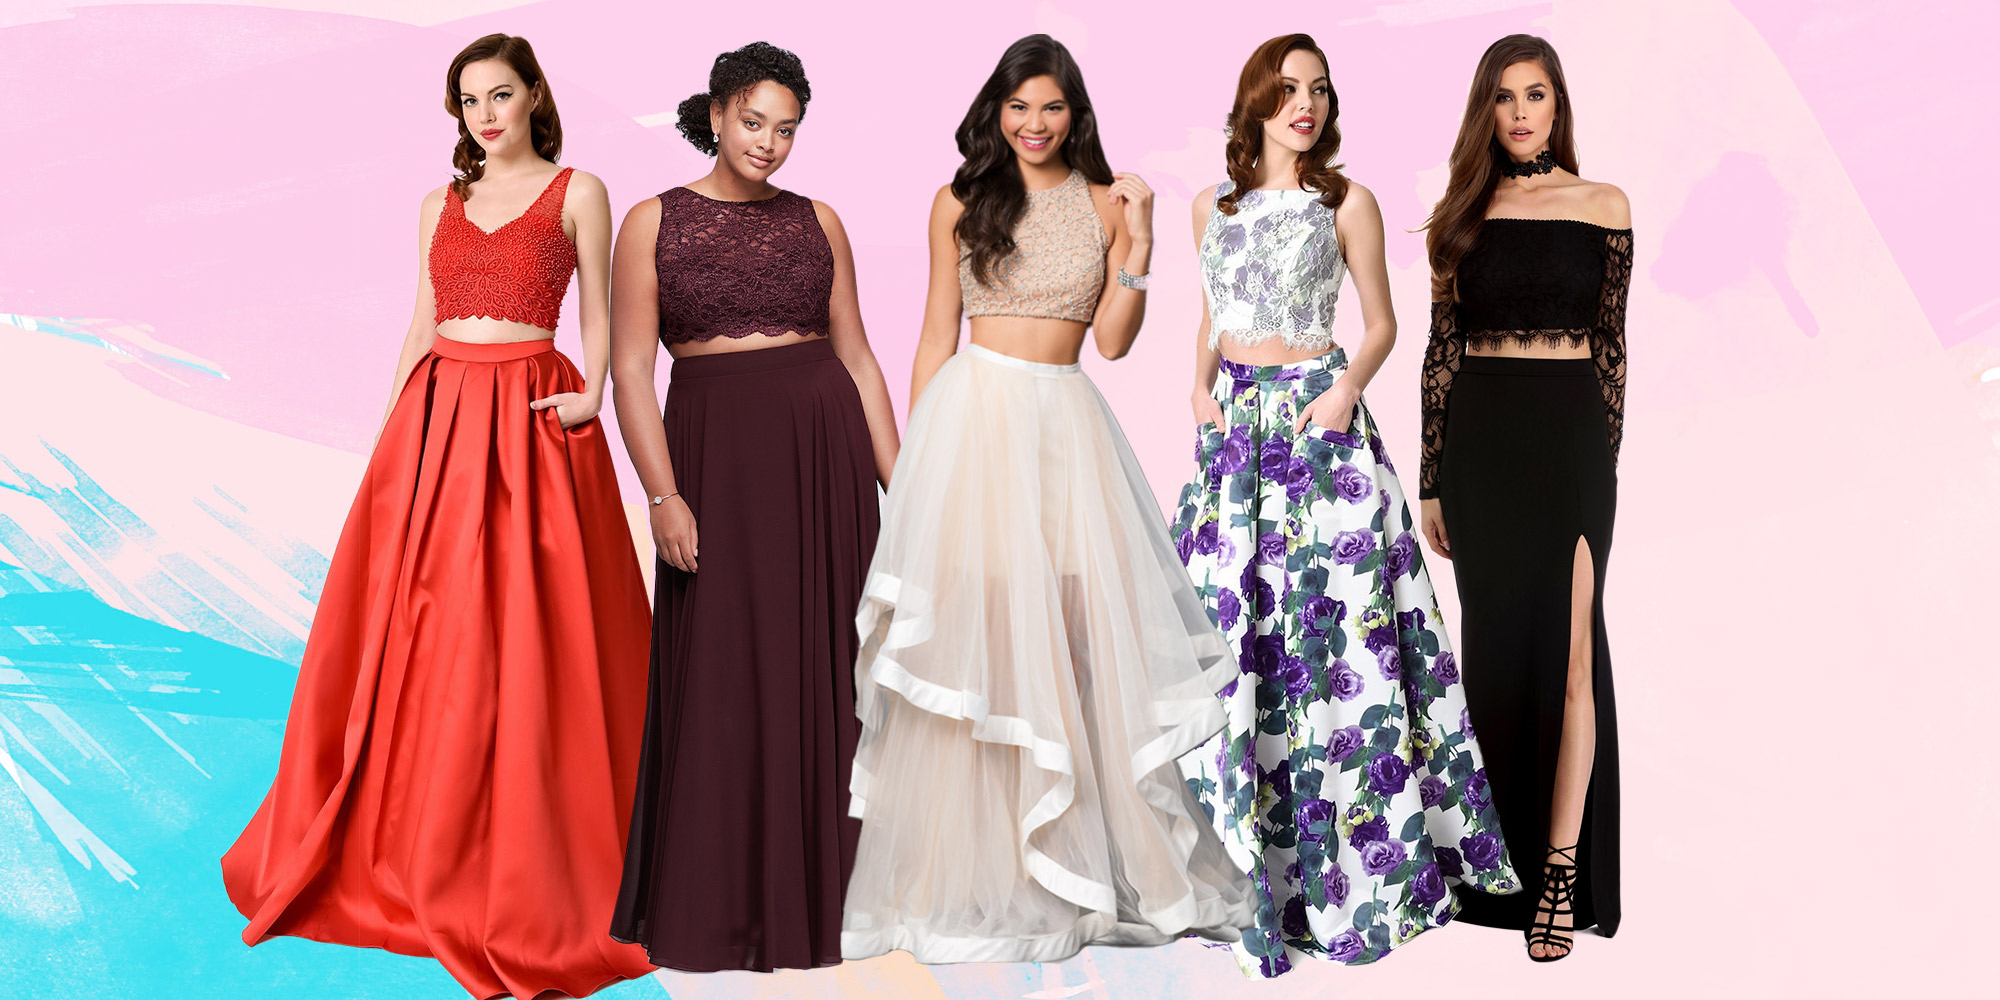 19 Best Two Piece Prom Dresses Of 2017 Crop Top Prom Dresses